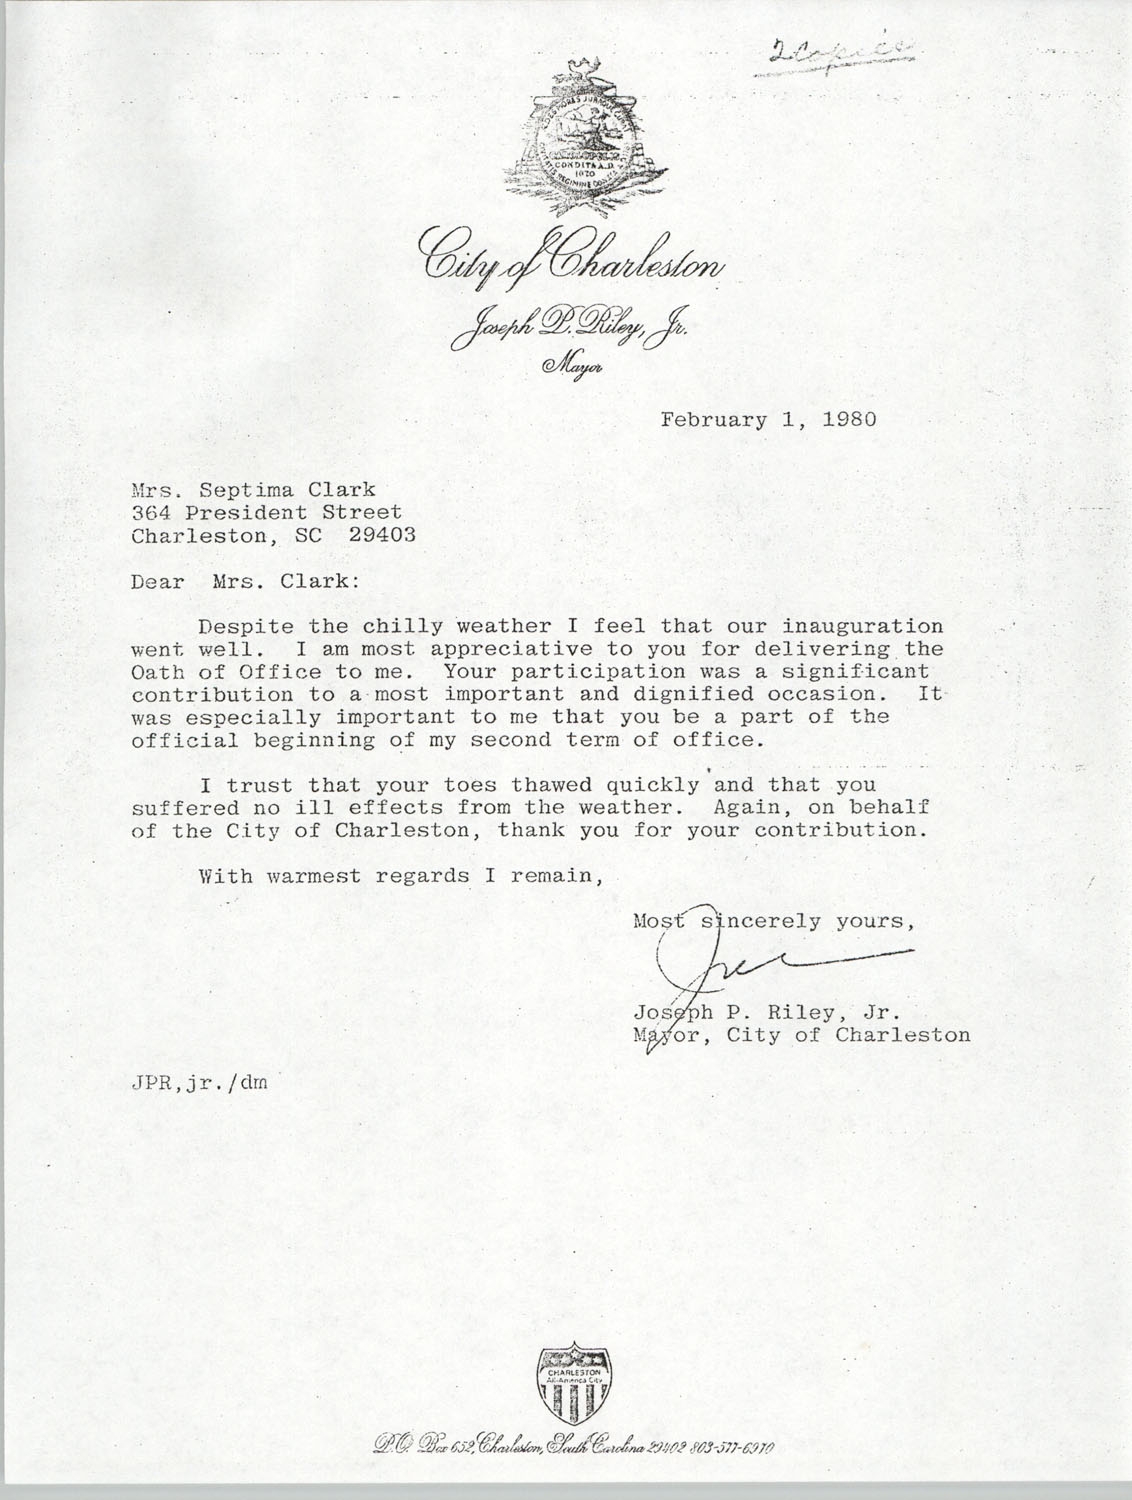 Letter from Joseph P. Riley to Septima P. Clark, February 1, 1980